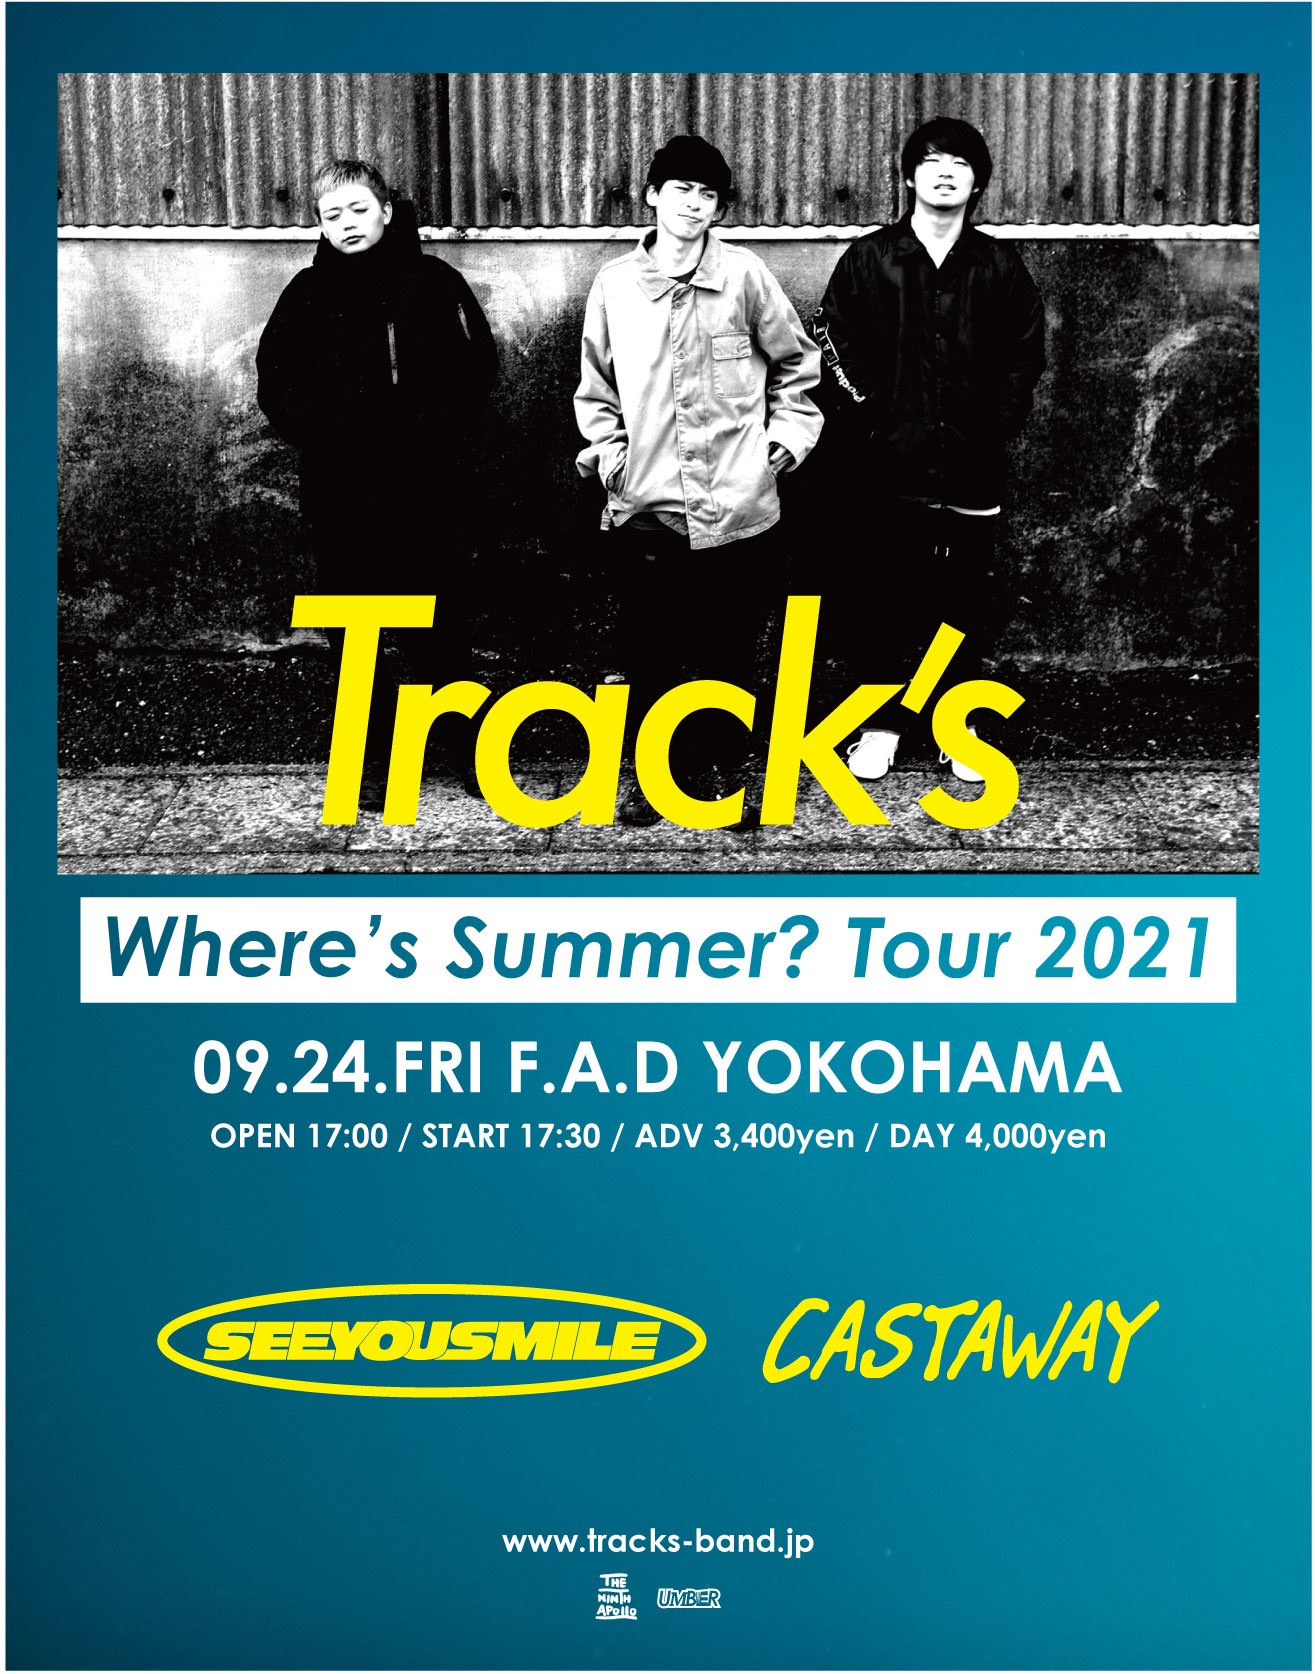 Track's Where's Summer? Tour 2021